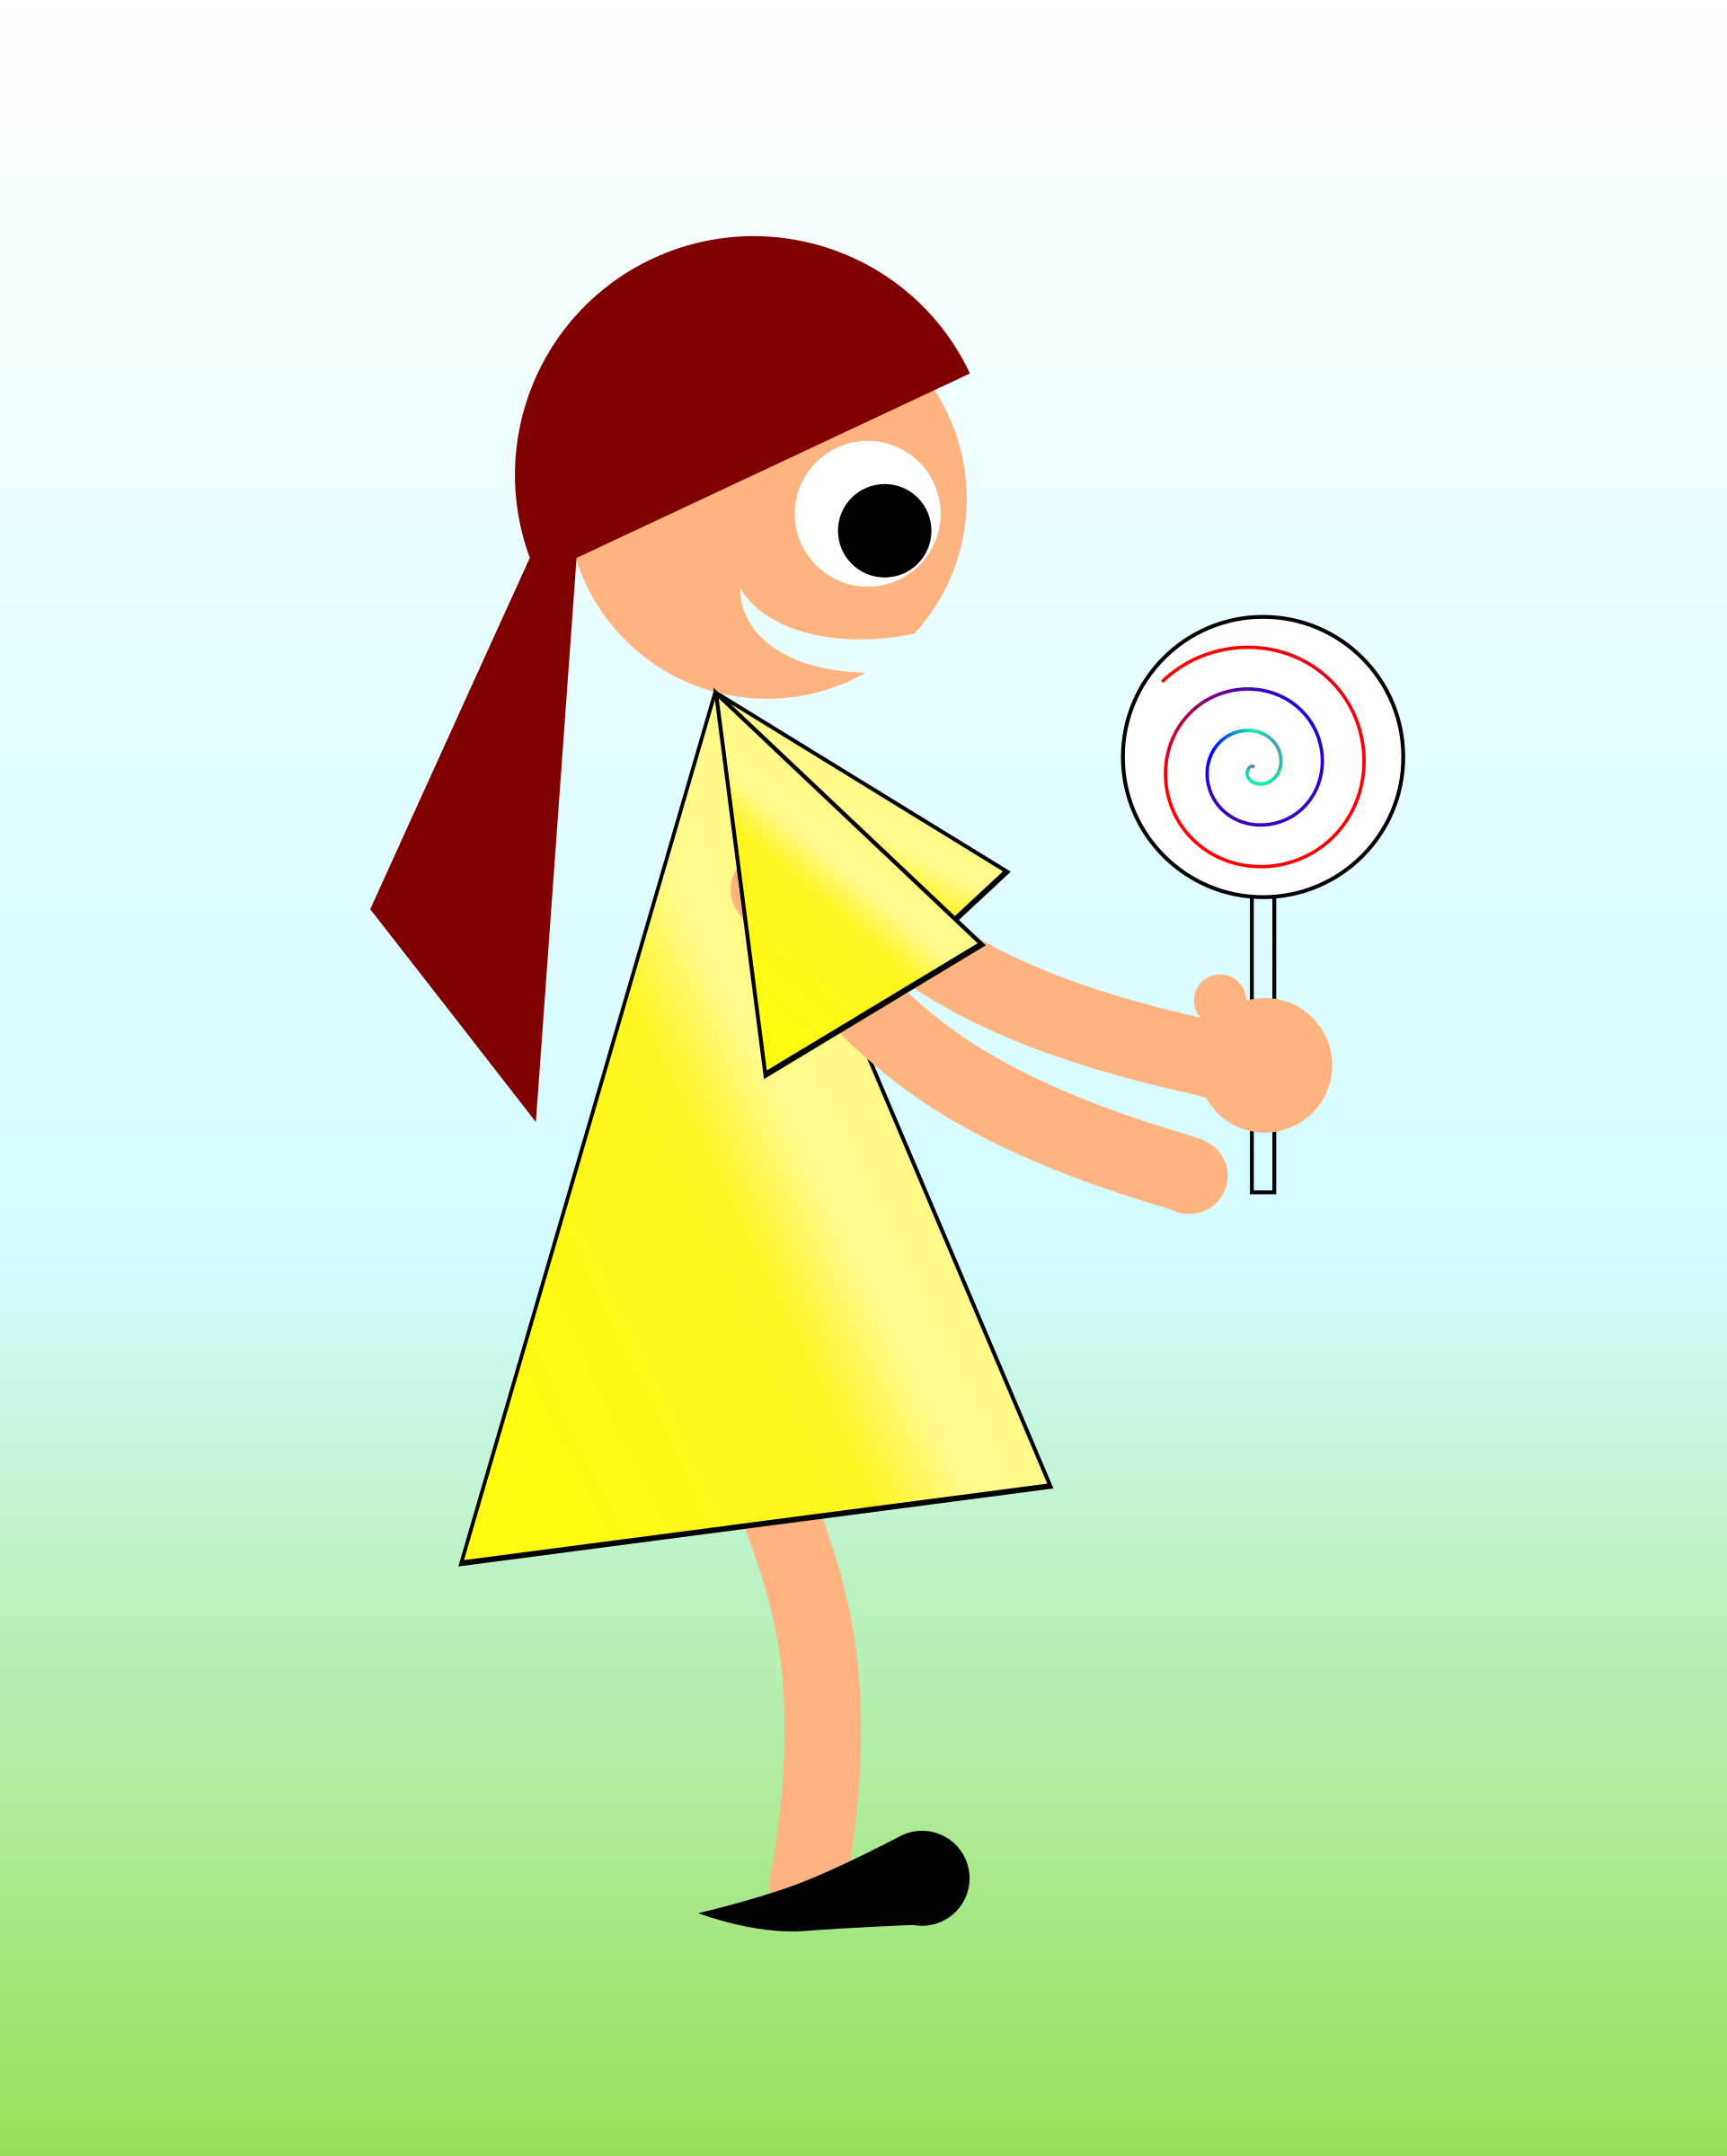 Girl with Lollypop by adam_lowe